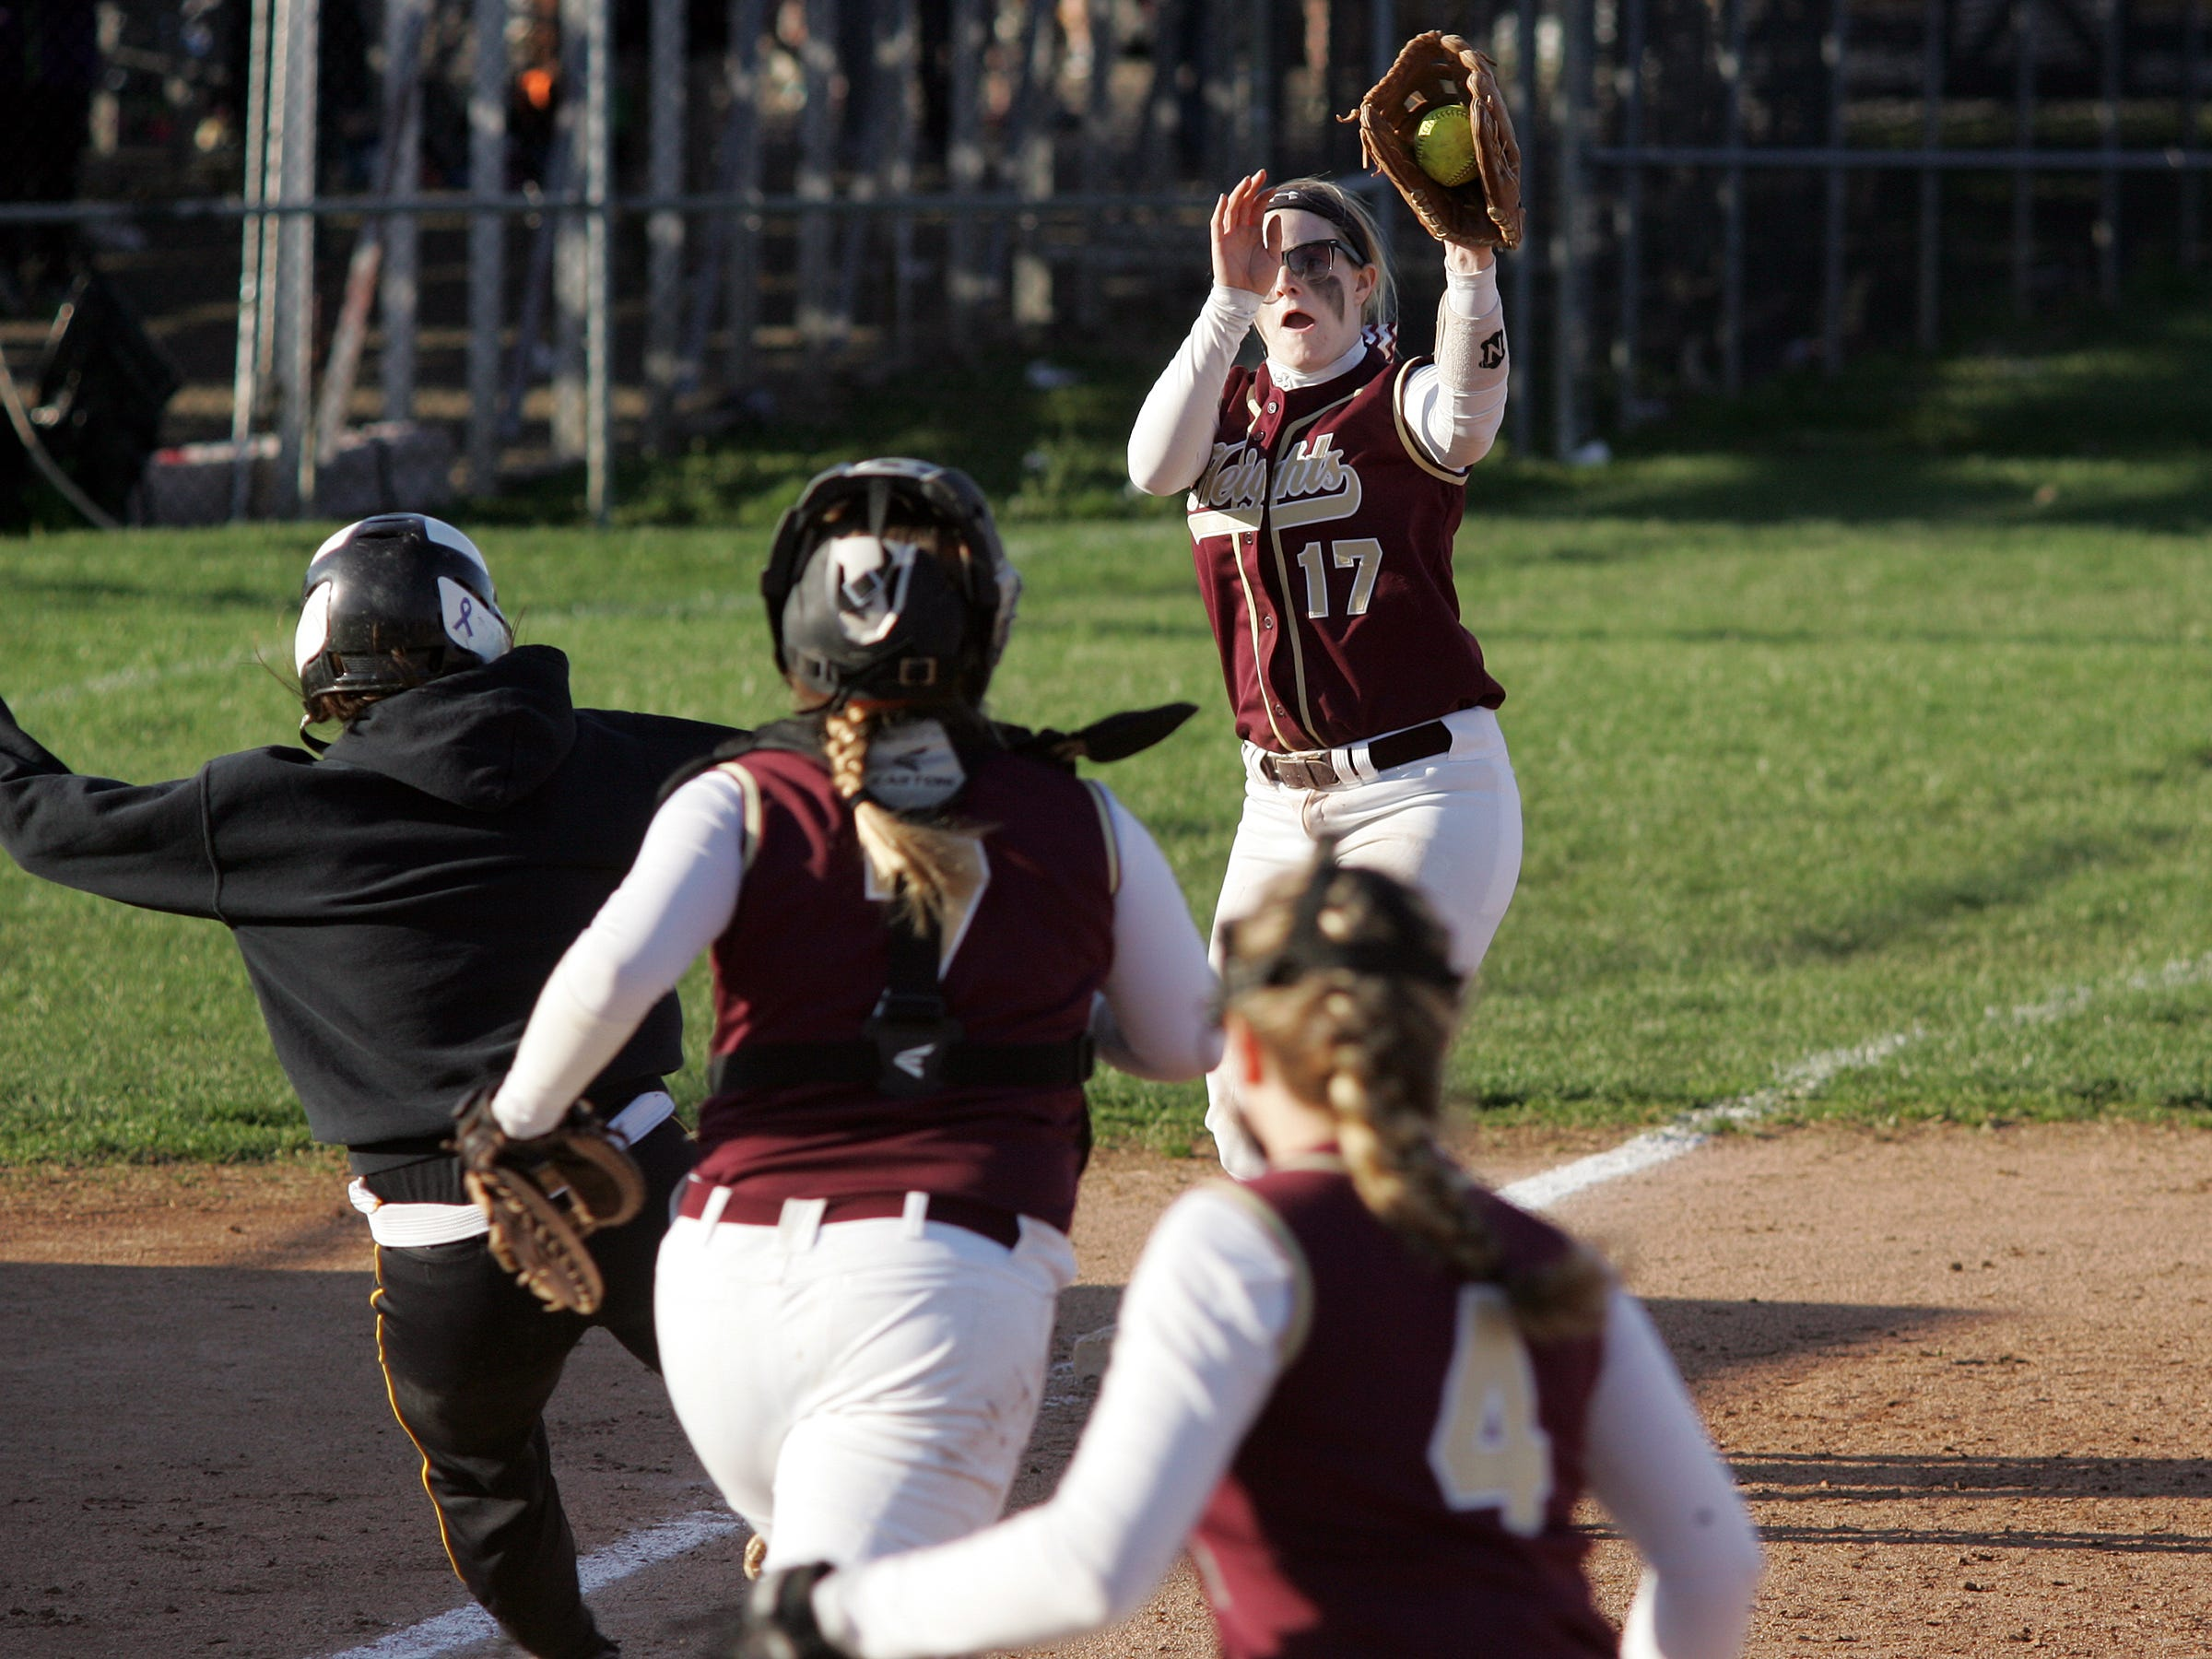 Licking Heights' Georganna Pendexter, top, chases down Watkins Memorial's Anna Shroyer in a rundown between third and home plate this past Friday during Watkins' 14-11 victory. The Hornets led 11-3 in the fifth inning before Watkins rallied.